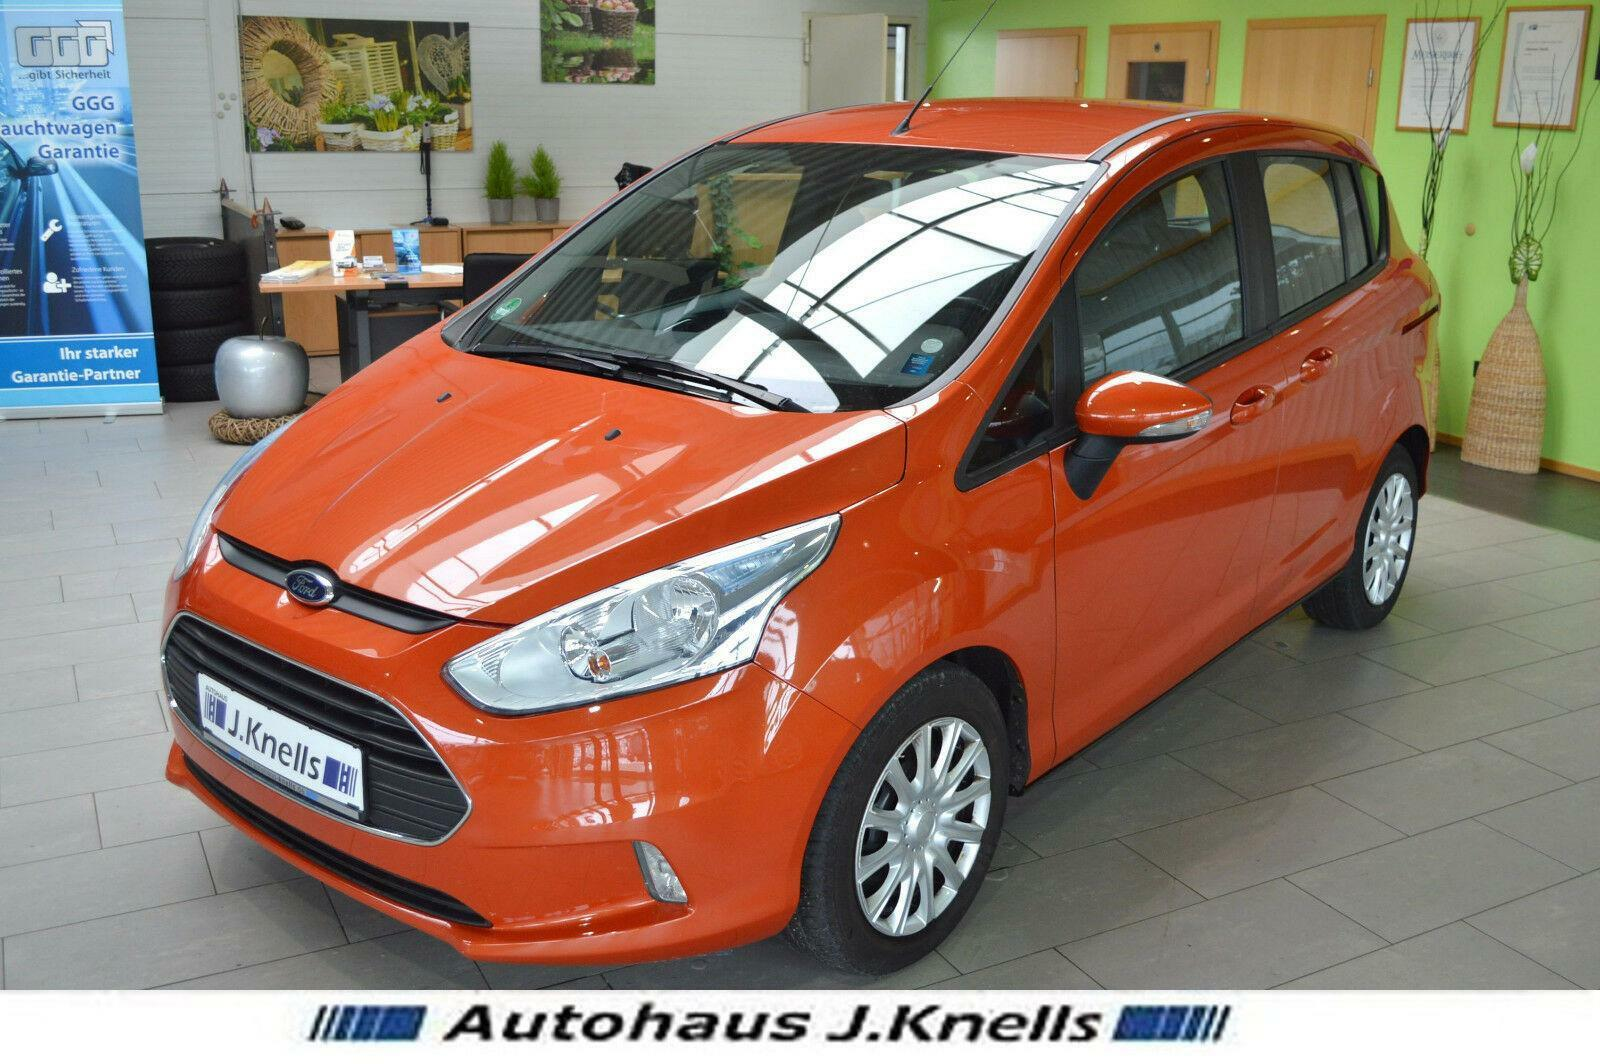 FORD B-Max 1,0 Eco Boost/Orig. 56600km/PDC/SHZ/